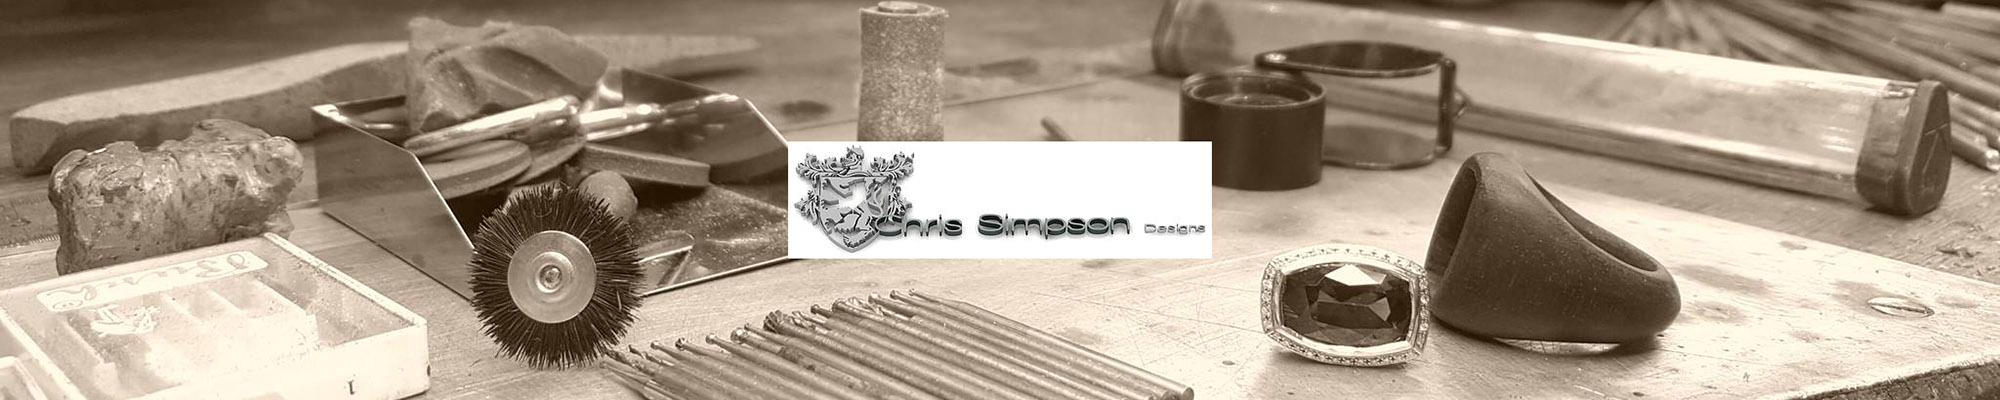 Chris Simpson Designs banner image